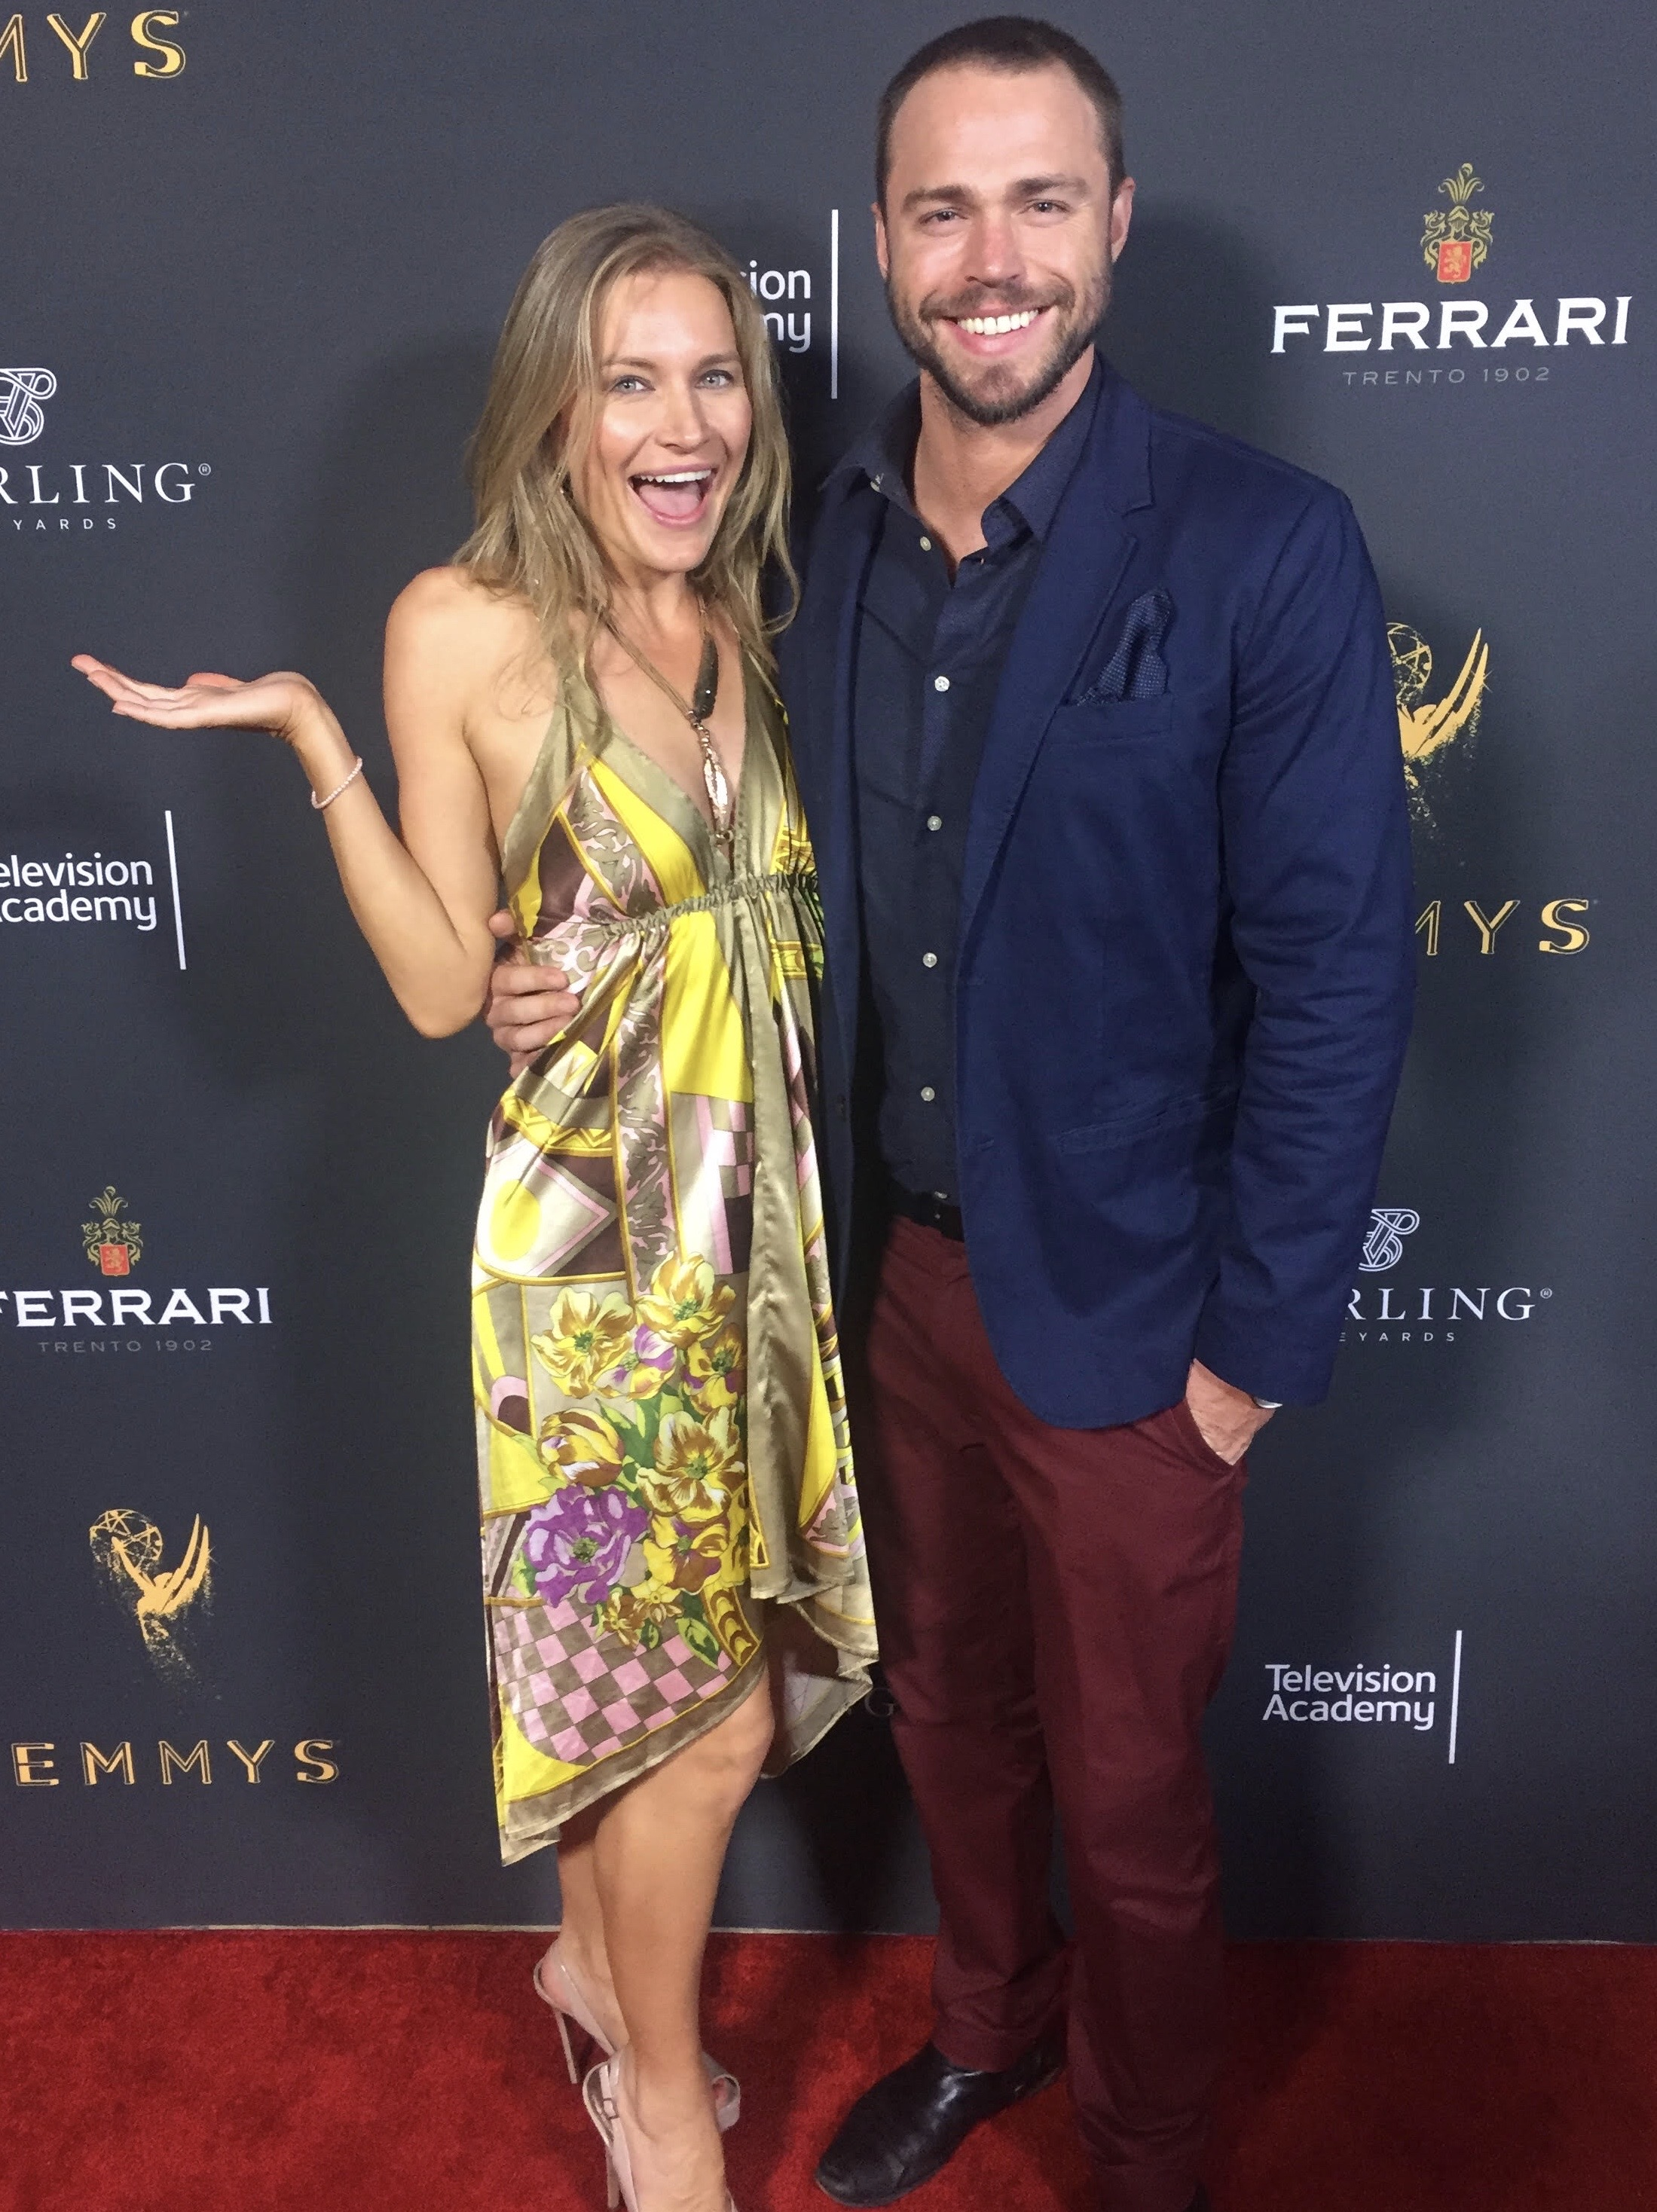 Kym Jackson & Andrew Steel at the Emmys